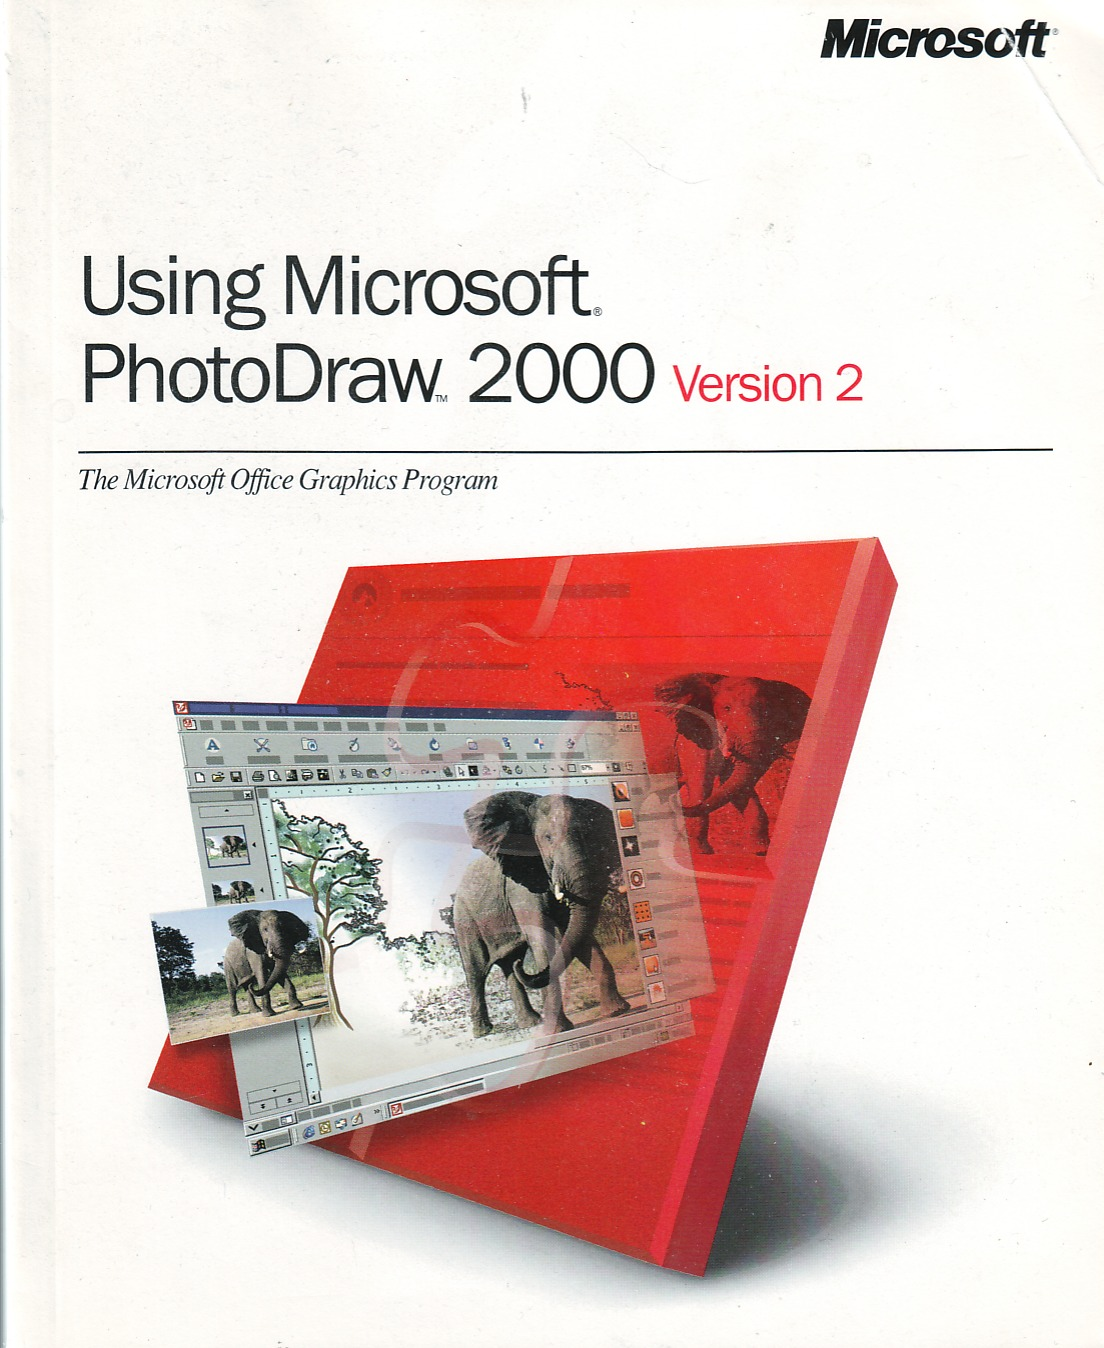 Using Microsoft PhotoDraw 2000 Version 2